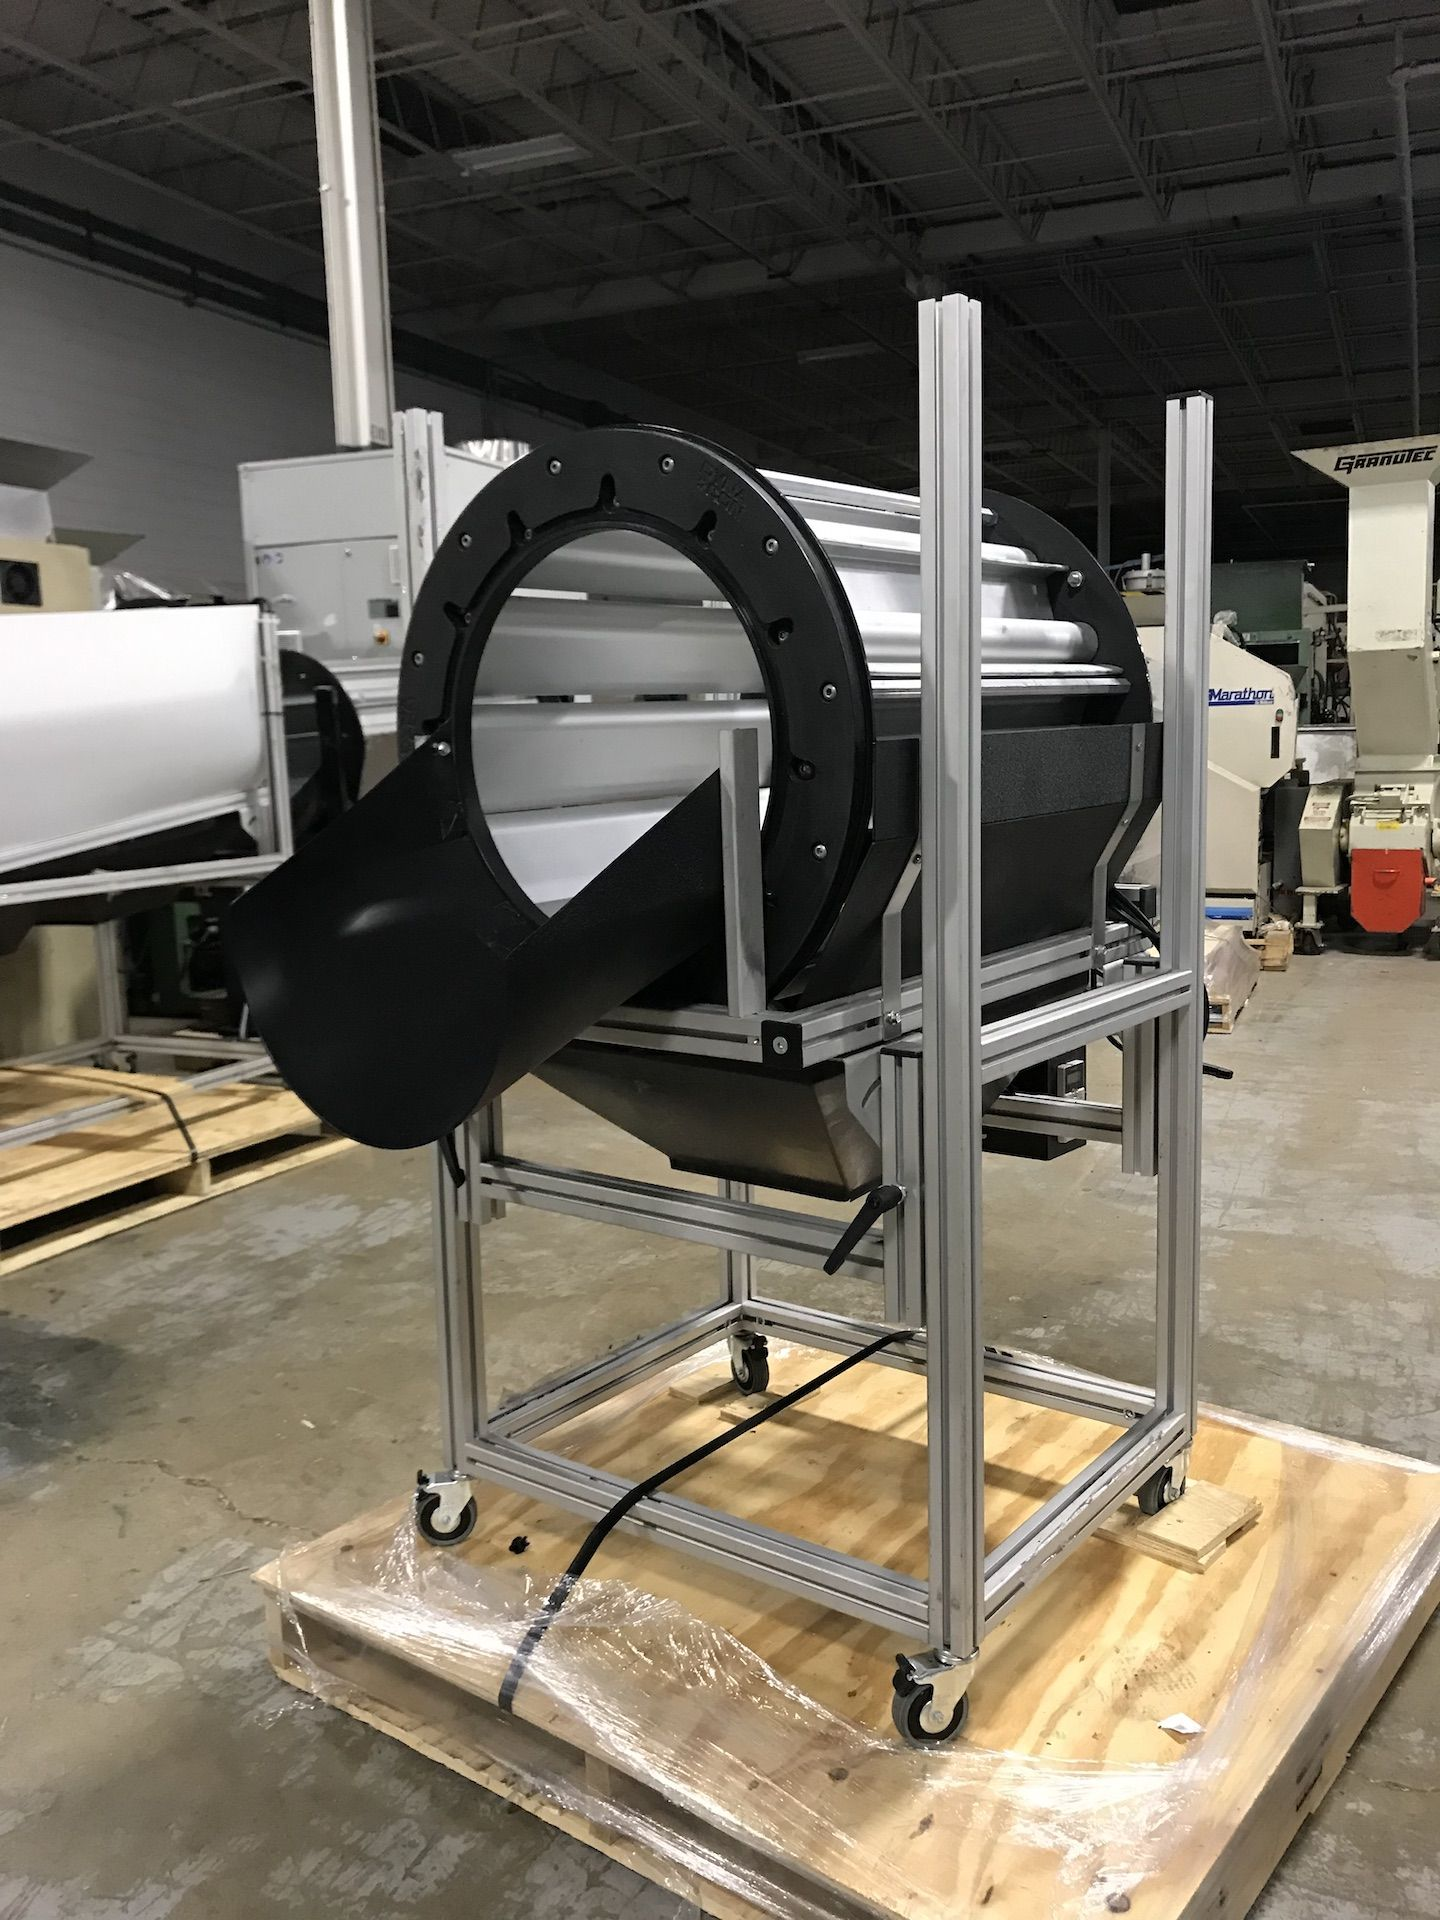 Lot 46 - Dyna-Con Drum Separator, New in 2017